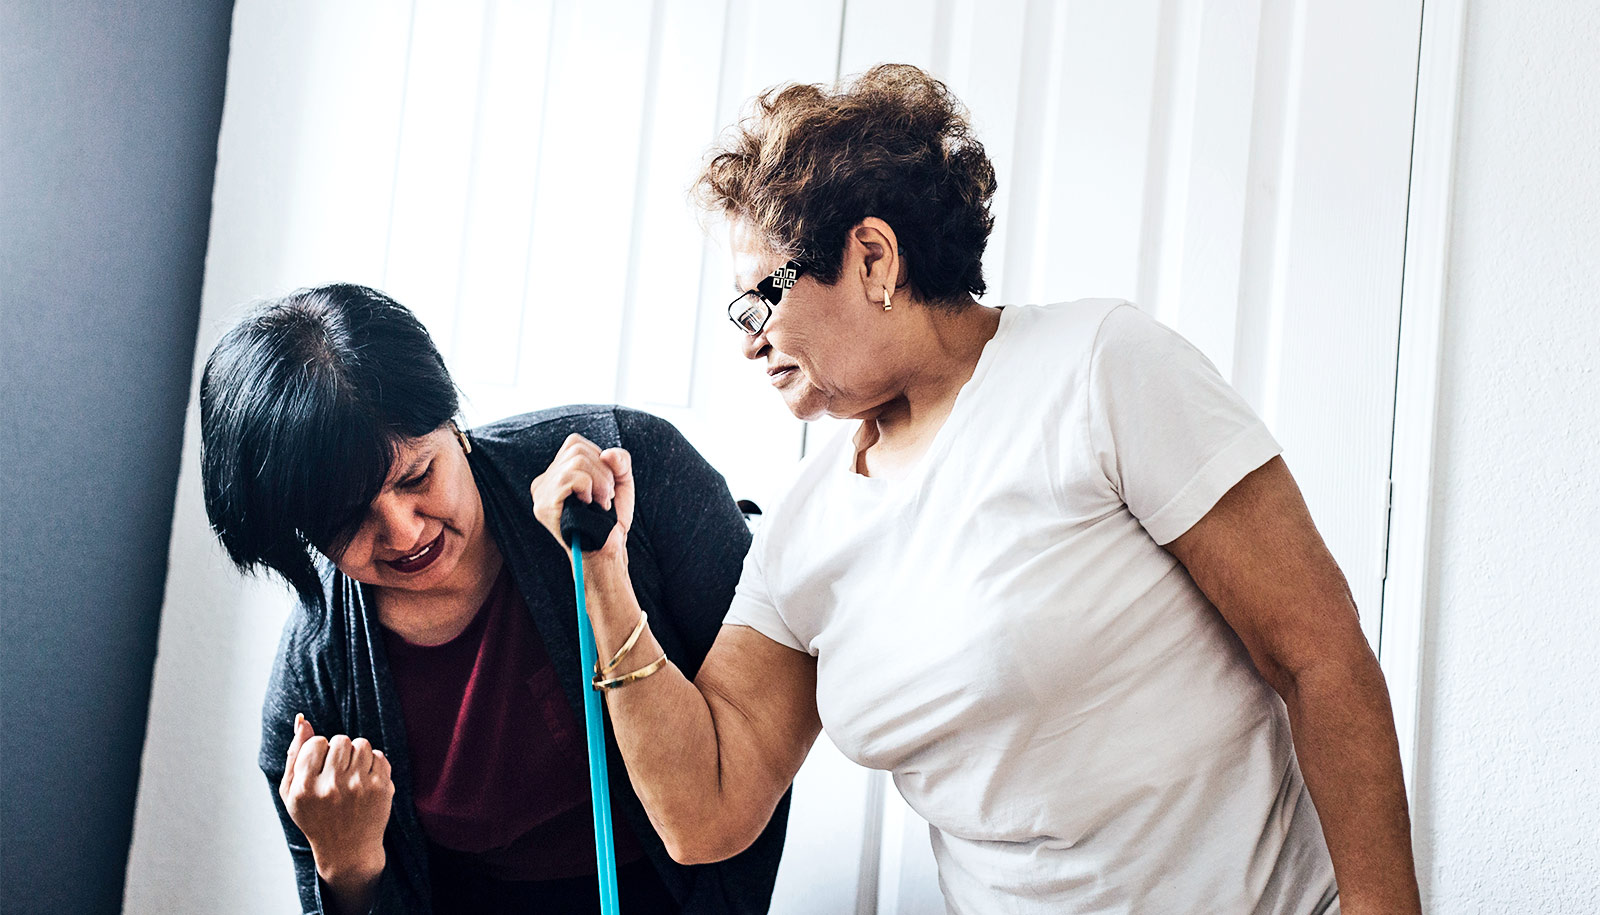 Goals boost recovery for older adults in physical therapy